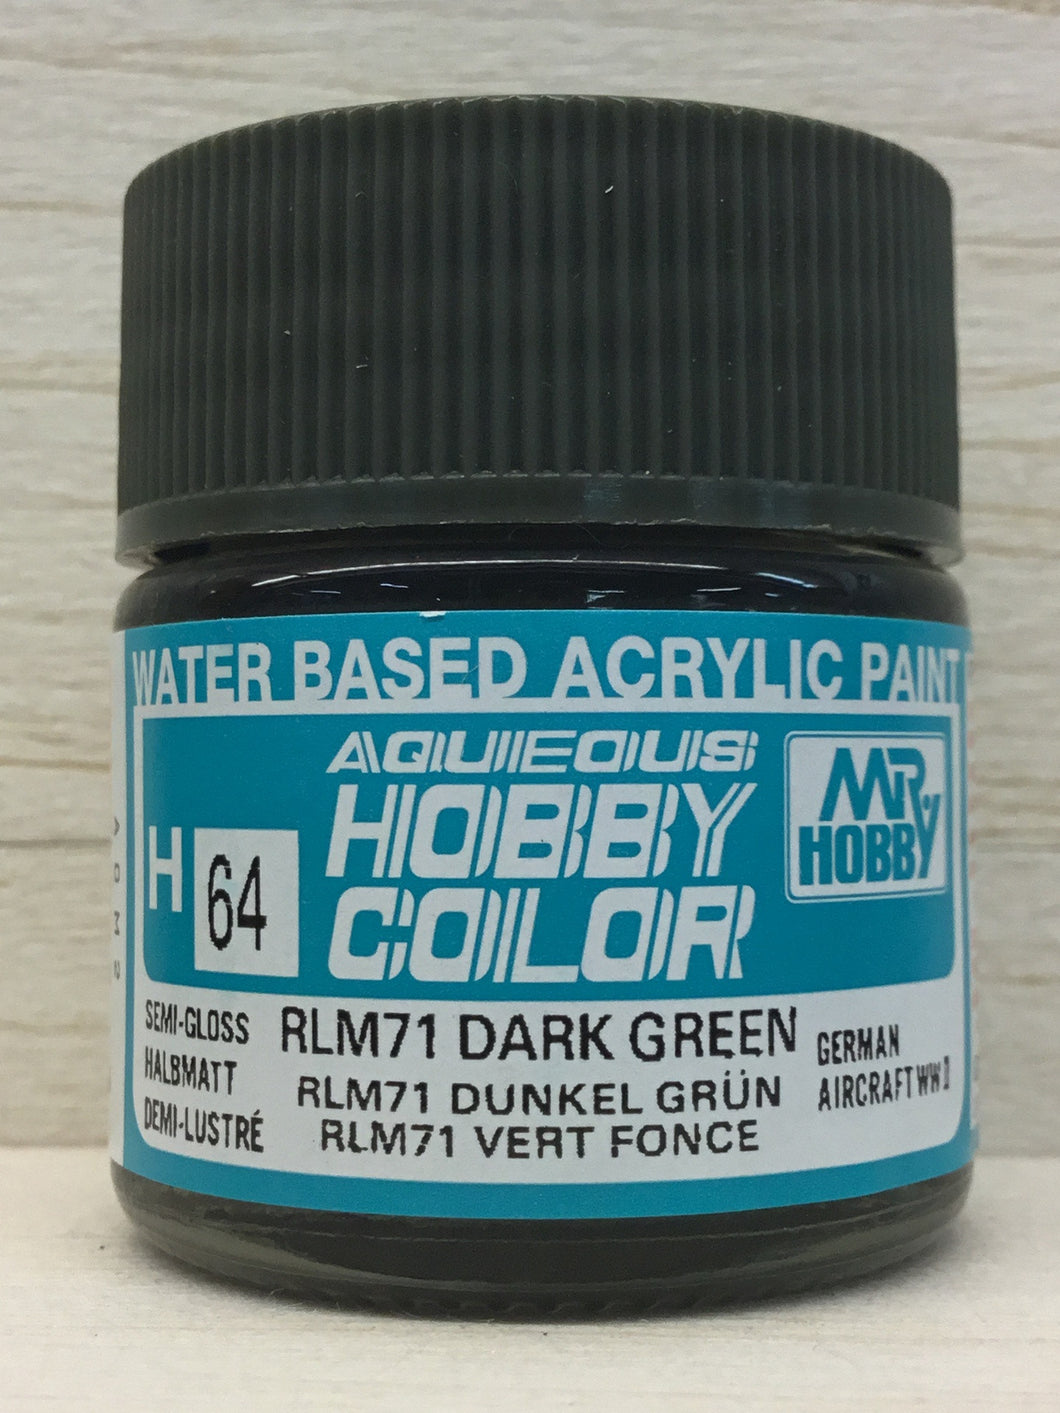 GUNZE HOBBY COLOR H64 SEMI GLOSS RLM 71 DARK GREEN